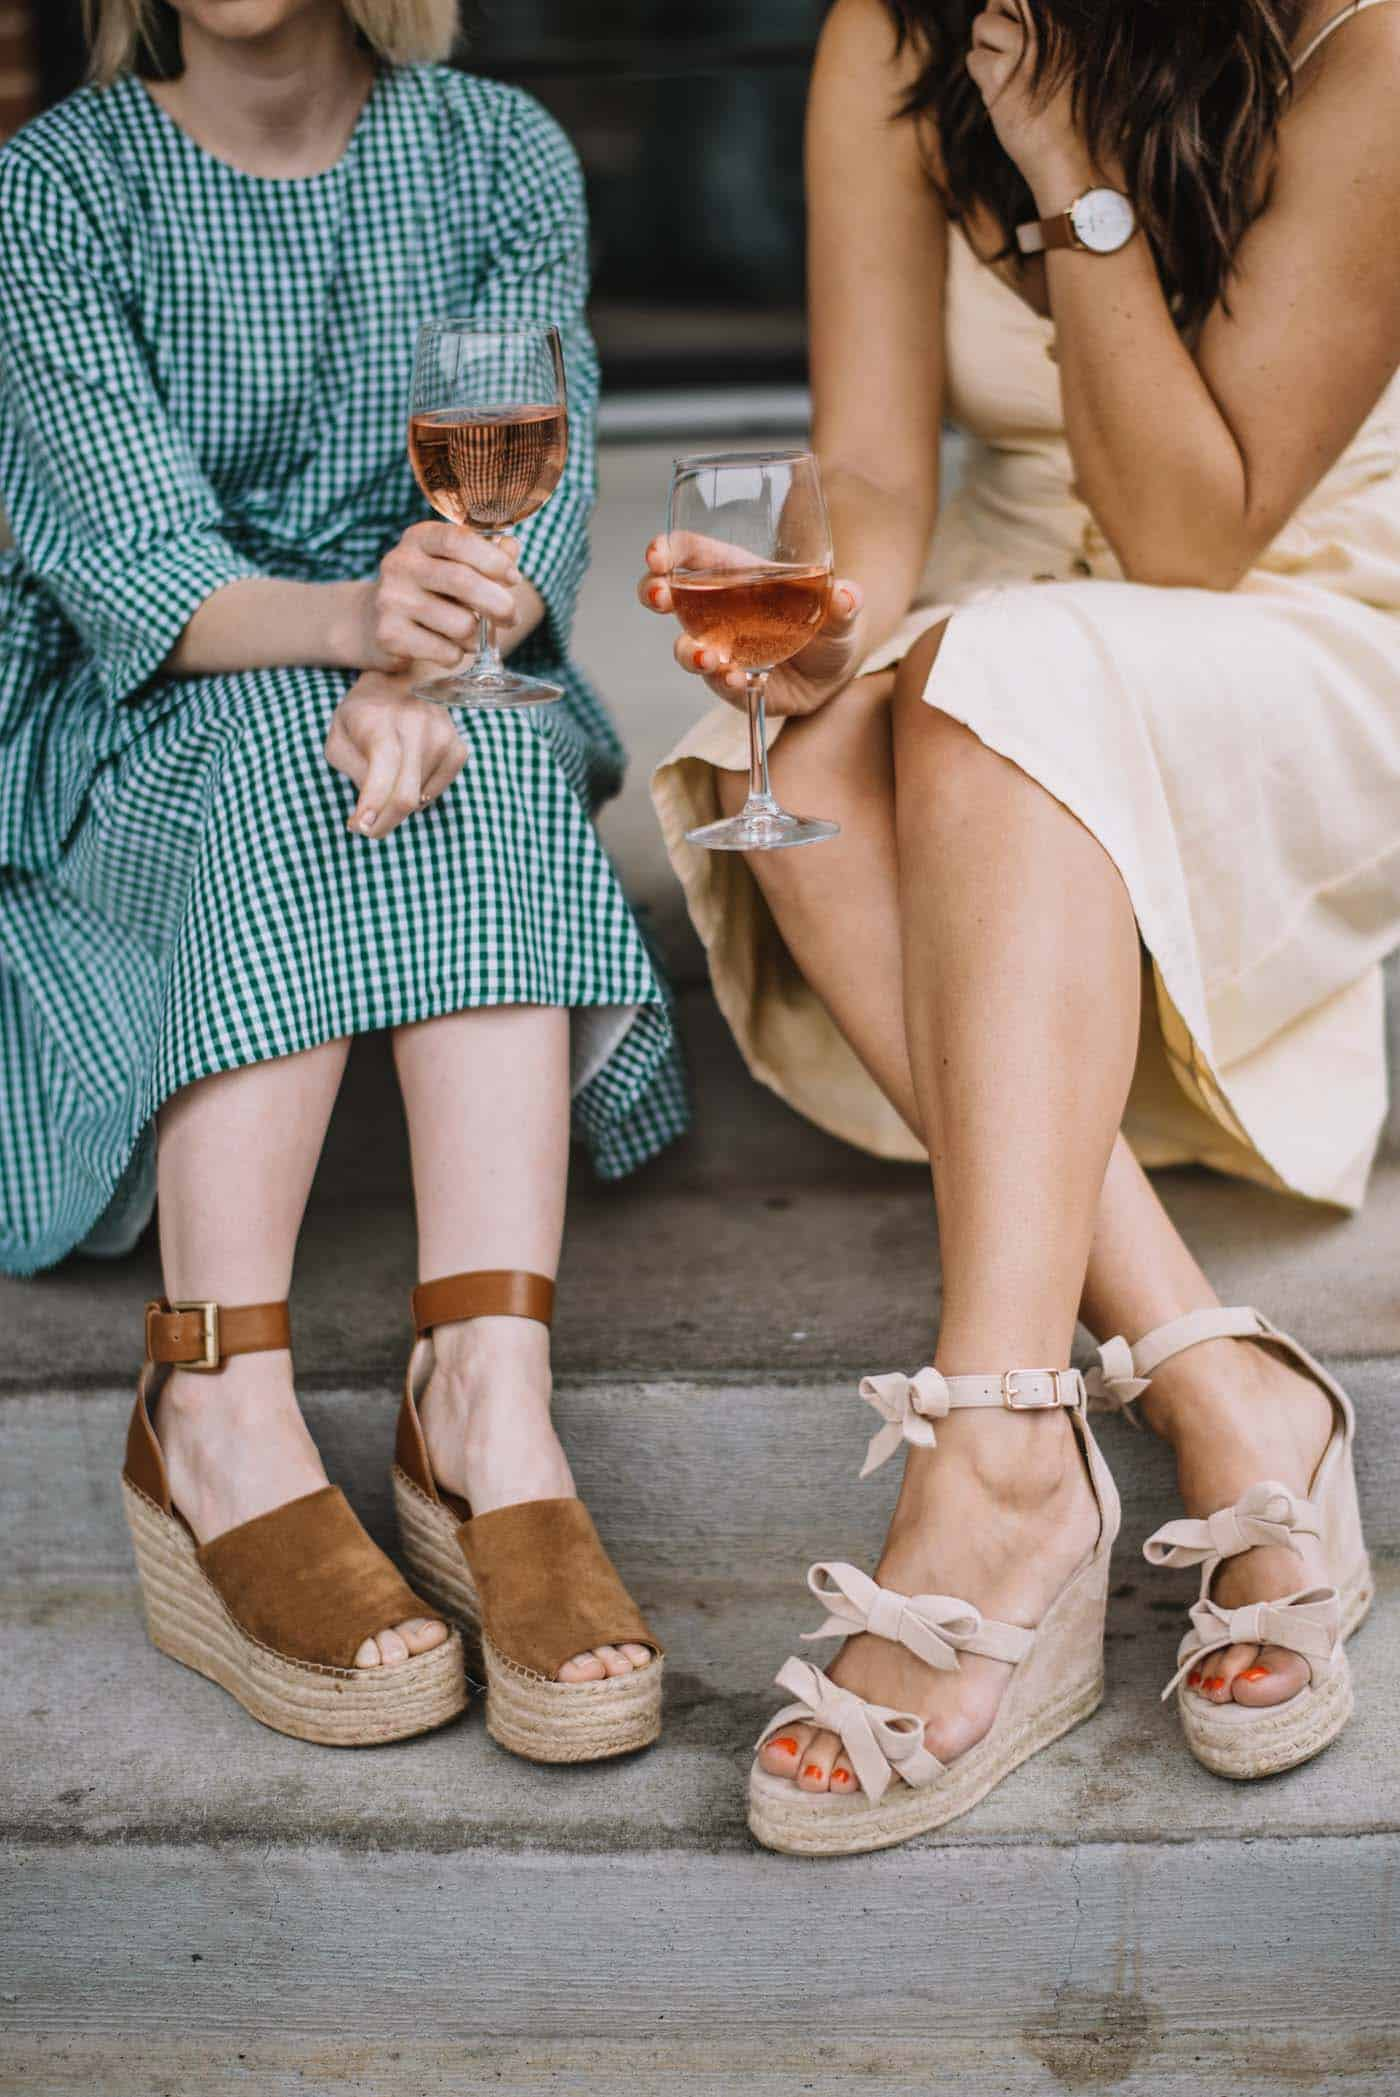 wine and cheese night ideas, wine with friends in the summer - My Style Vita